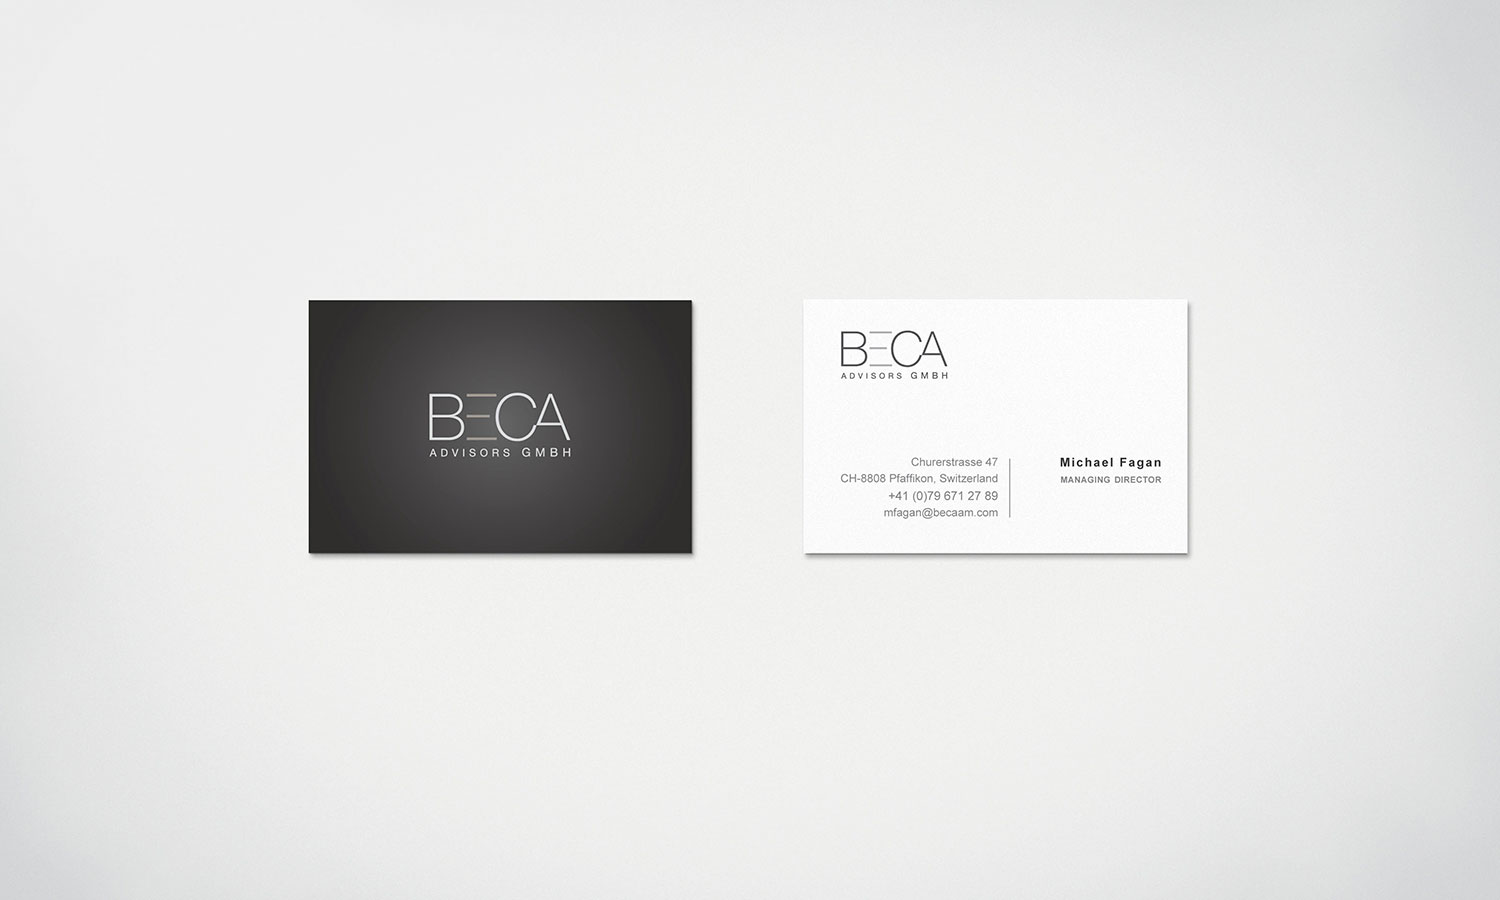 BECA Asset Management